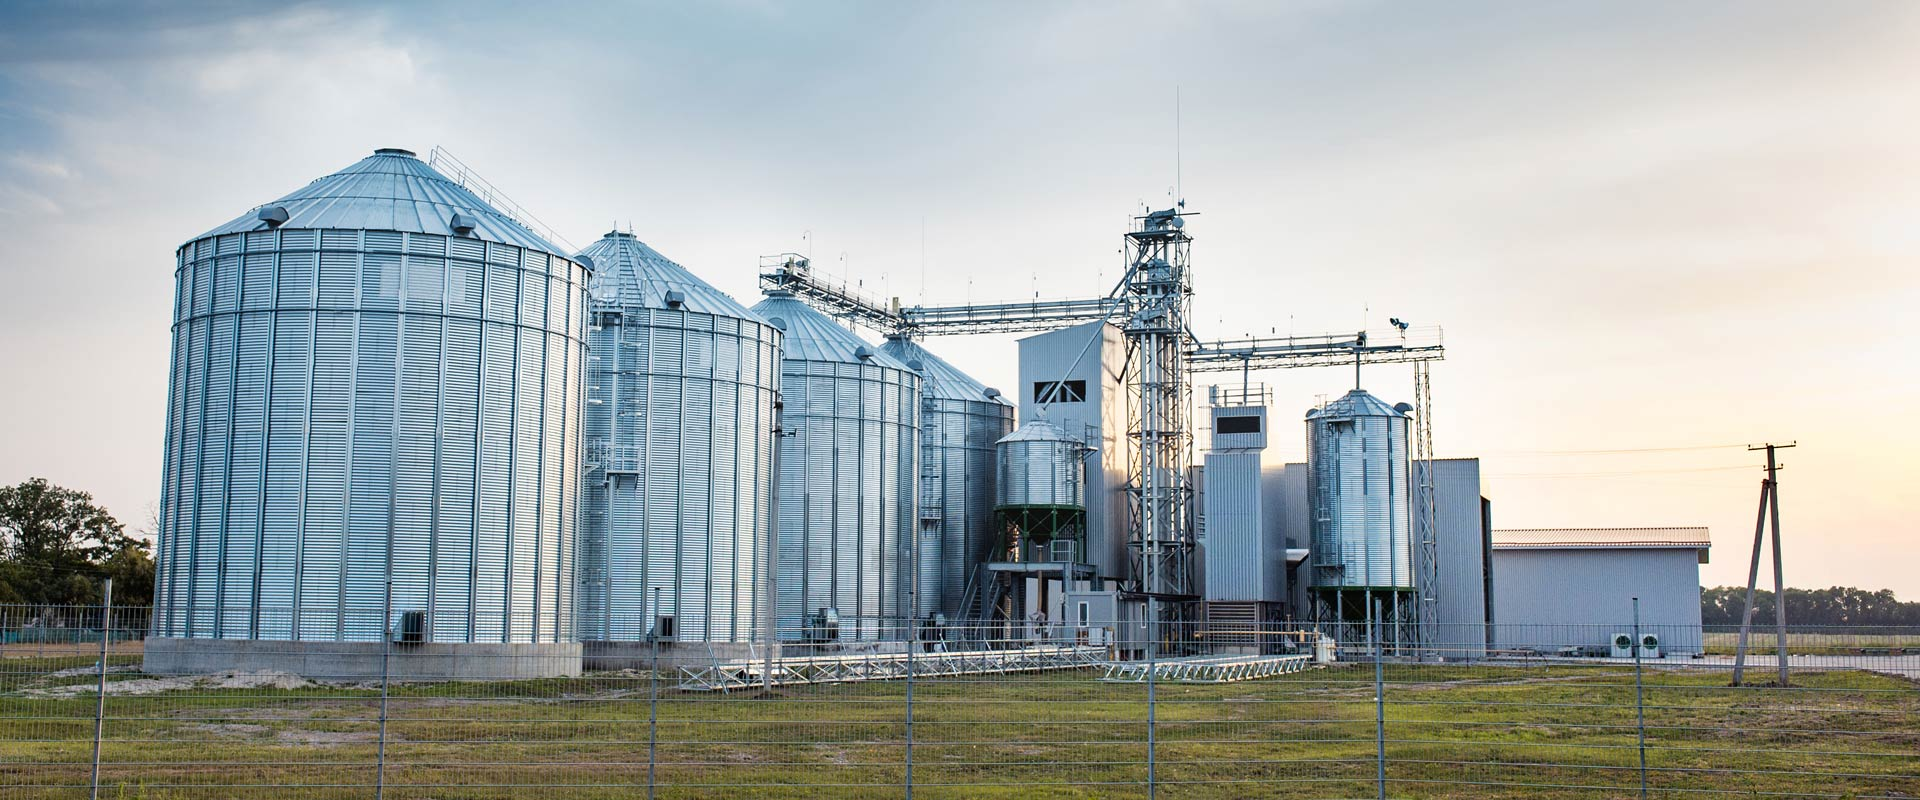 Iowa agribusiness insurance - grain bins on a farm